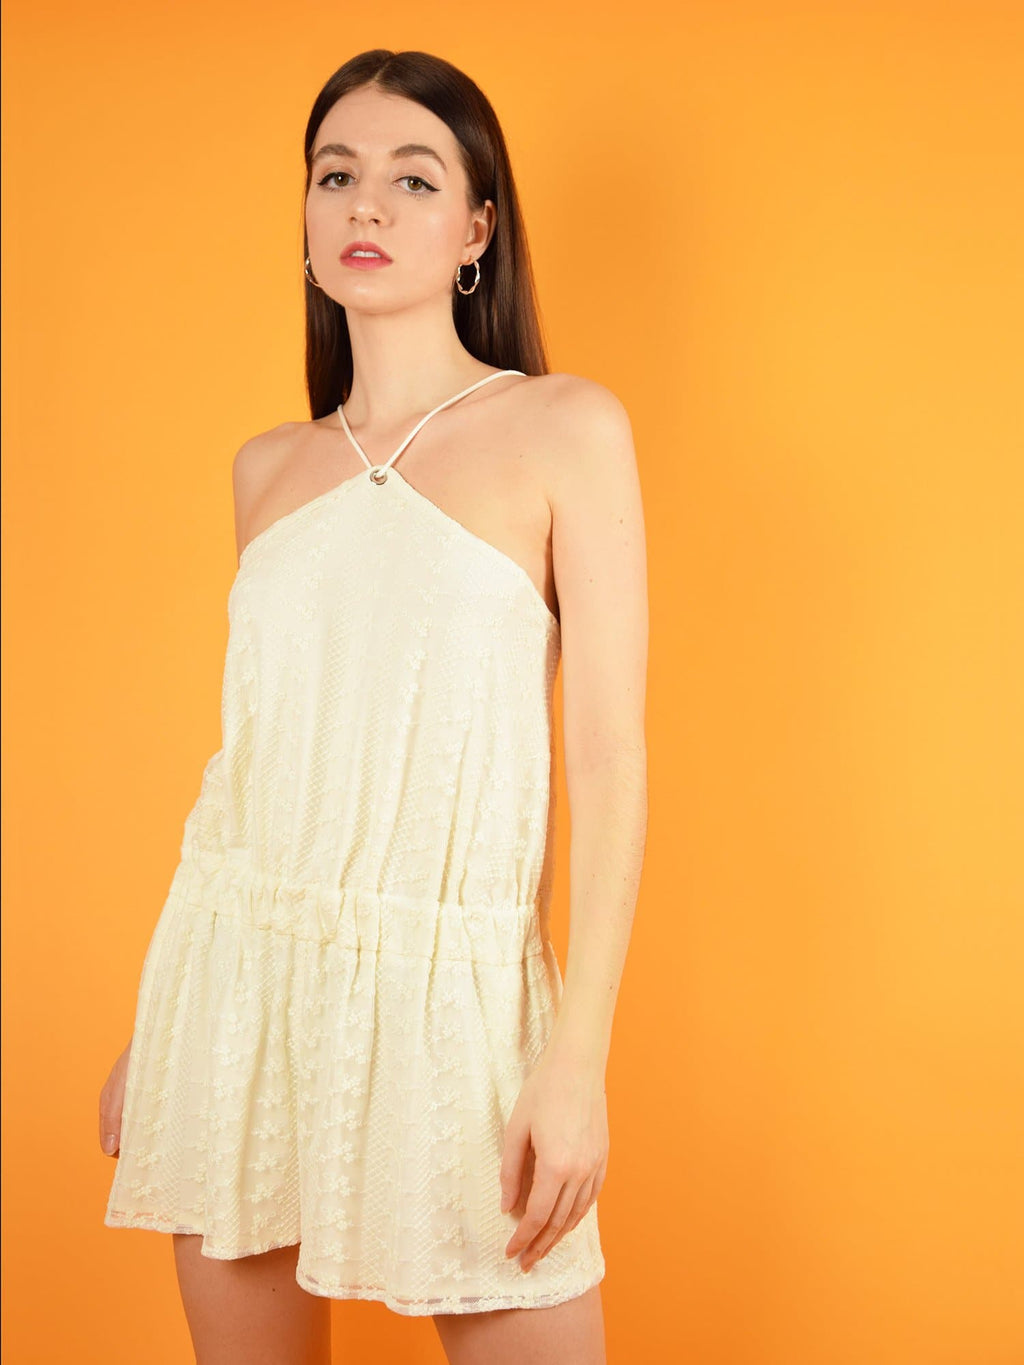 The desert dreams playsuit in white lace is a short, summer jumpsuit from white lace. It is semi backless and has a loose, comfortable fit.